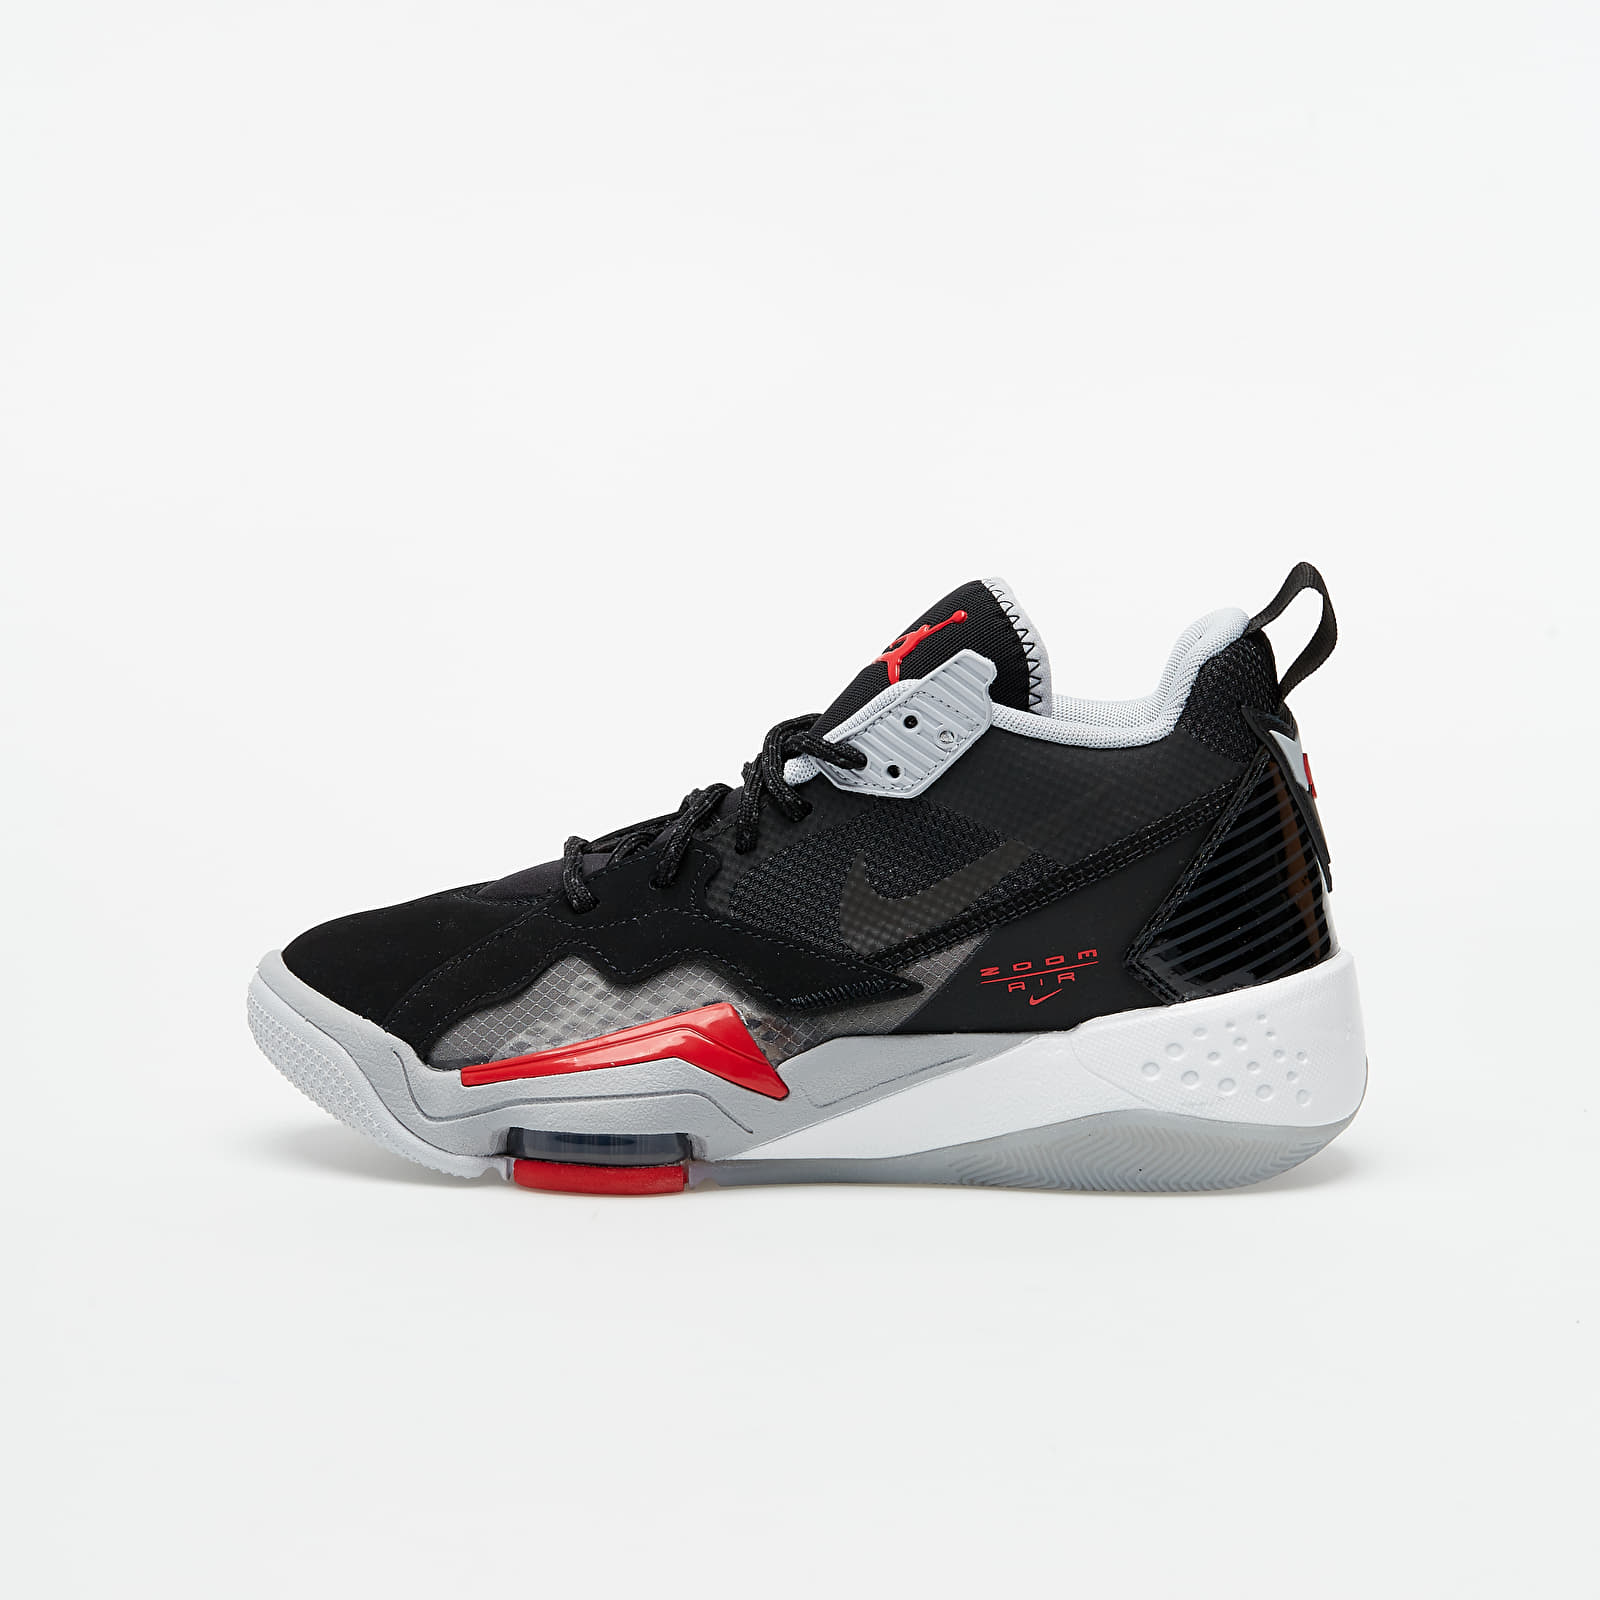 Zapatillas de niño Jordan Zoom '92 (GS) Black/ University Red-Anthracite-Sky Grey